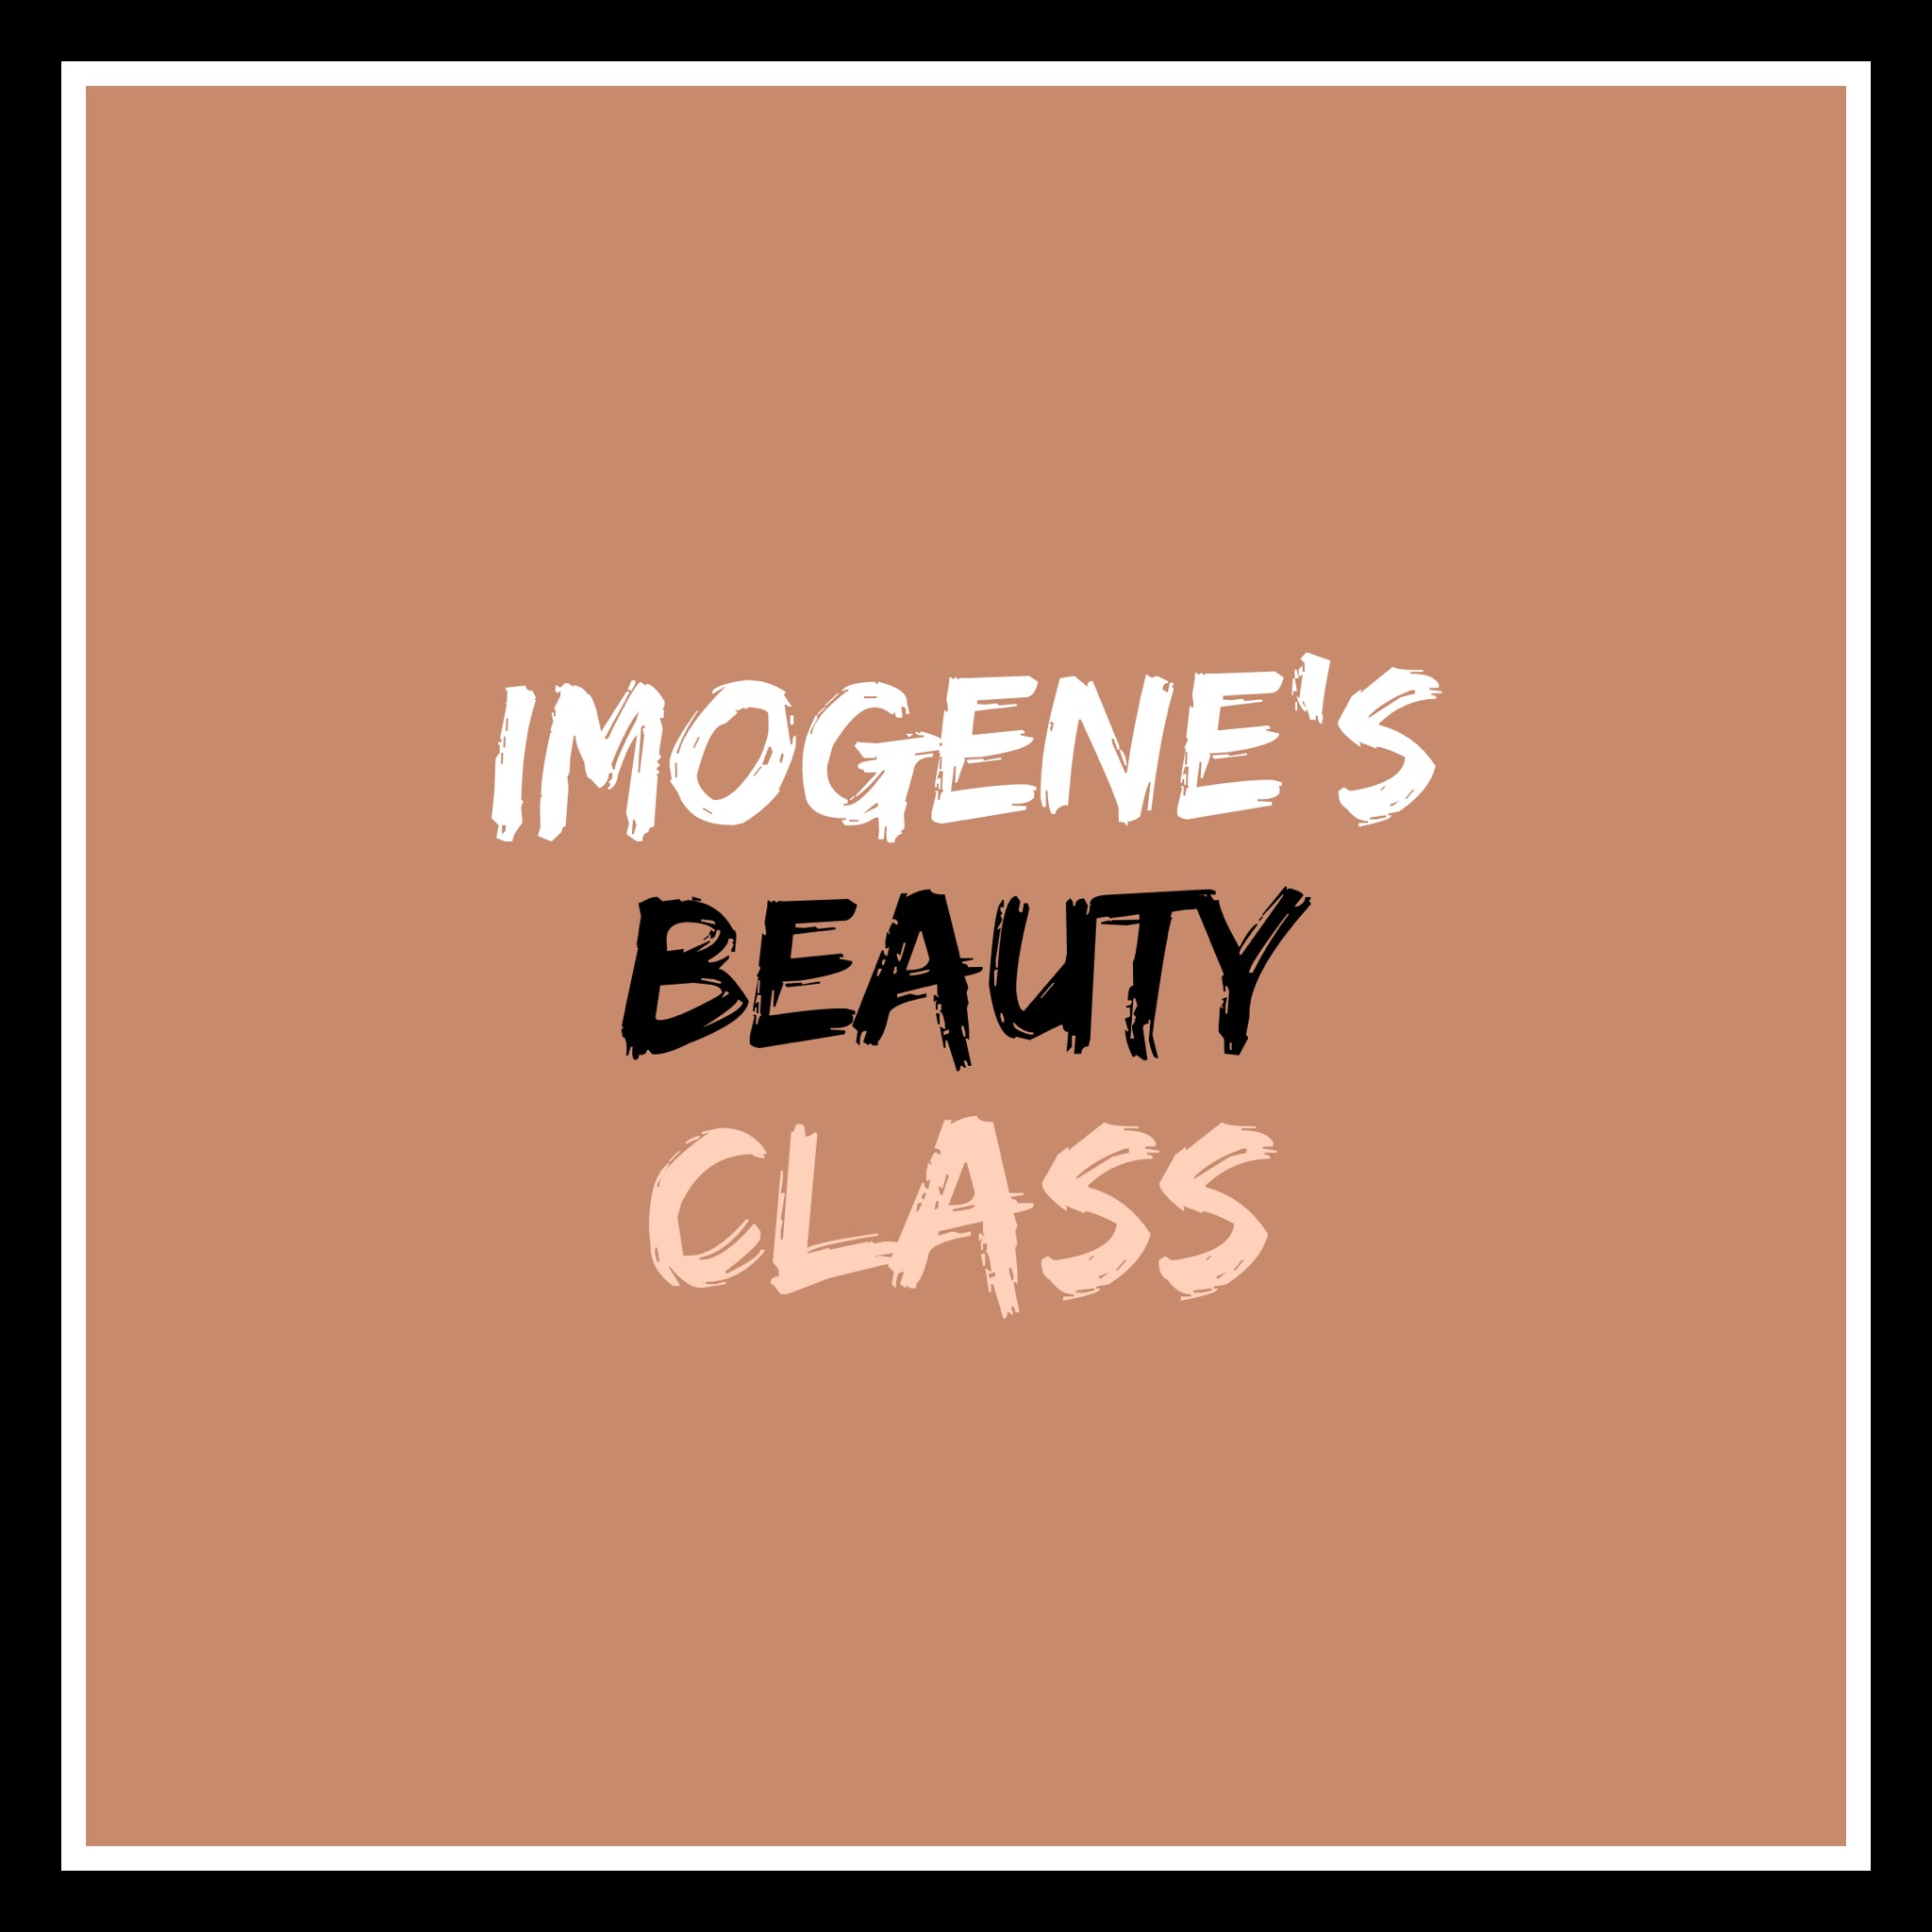 The class agenda includes learning a proper skincare regimen to maintain beautiful healthy skin, foundation blending, highlighting and contouring, eyebrow structure, and much more!! In addition there will be a Q&A session to answer all of your beauty questions.